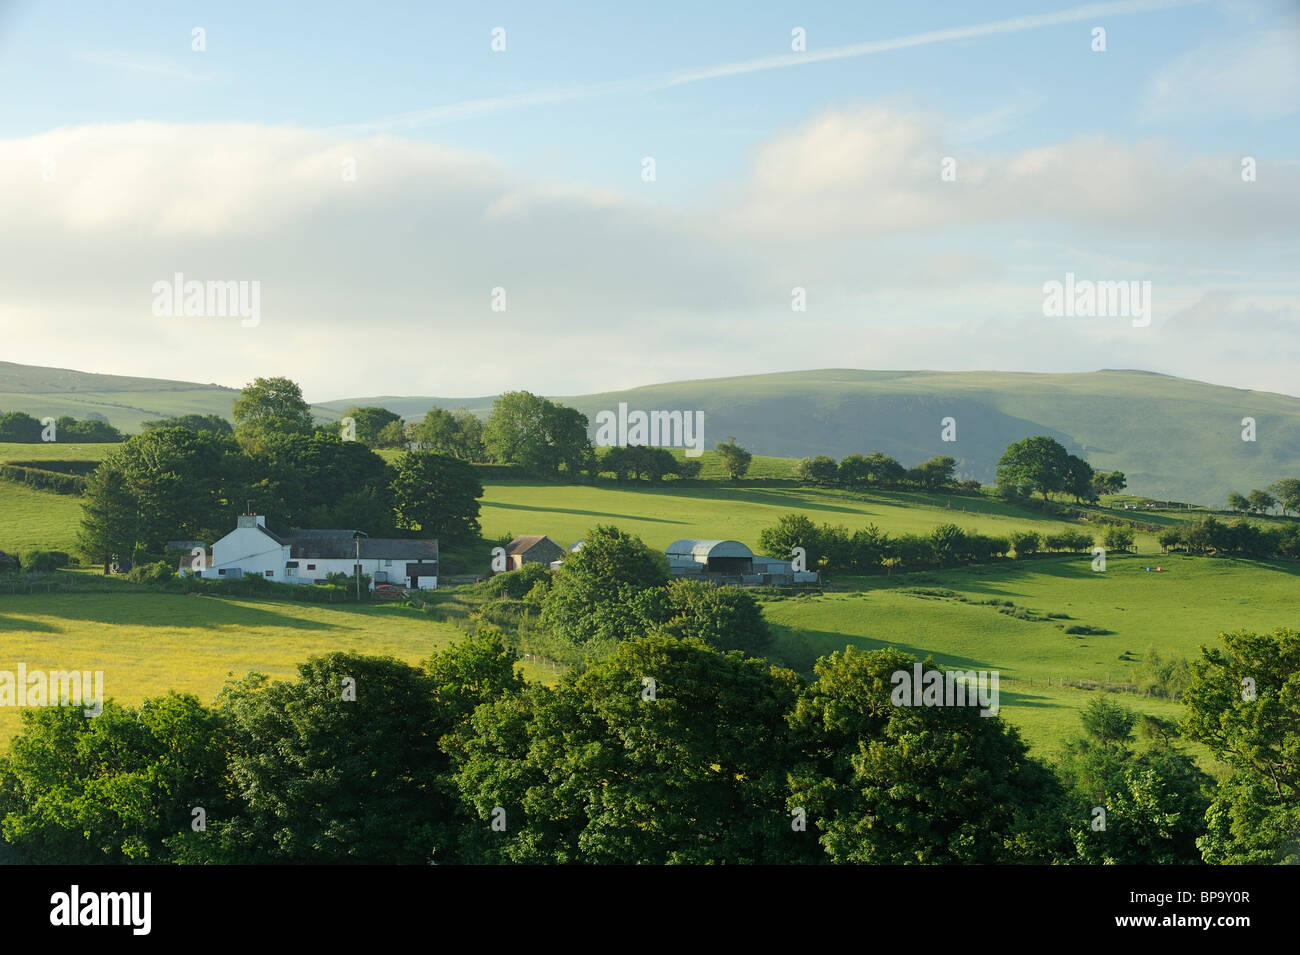 A farm amongst green hills in Caio, Carmarthenshire. - Stock Image